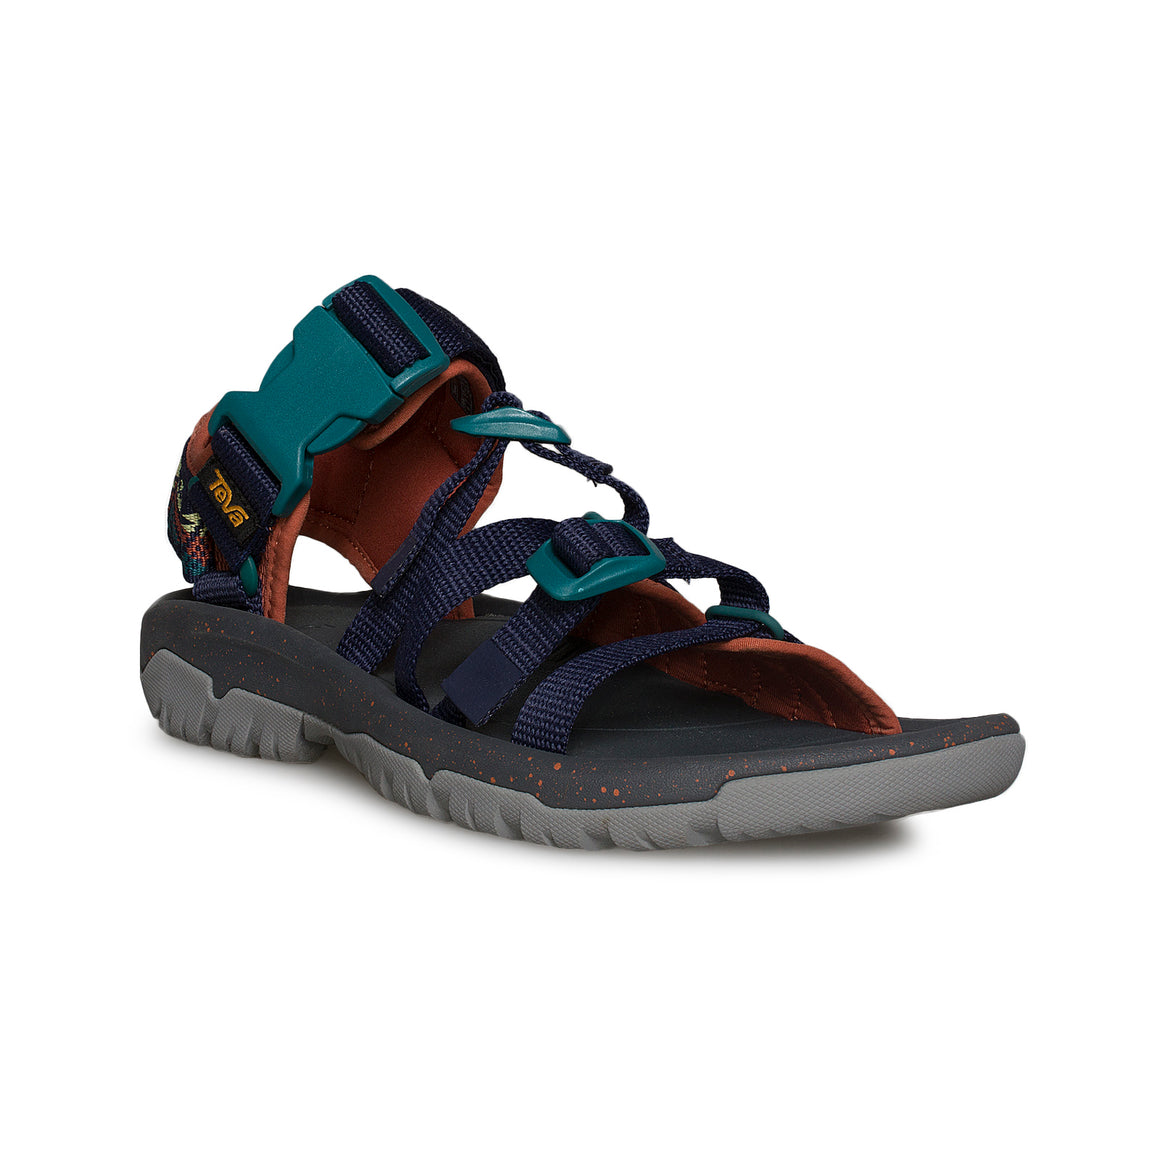 Teva Hurricane XLT 2 ALP Deep Lake sandals - Men's